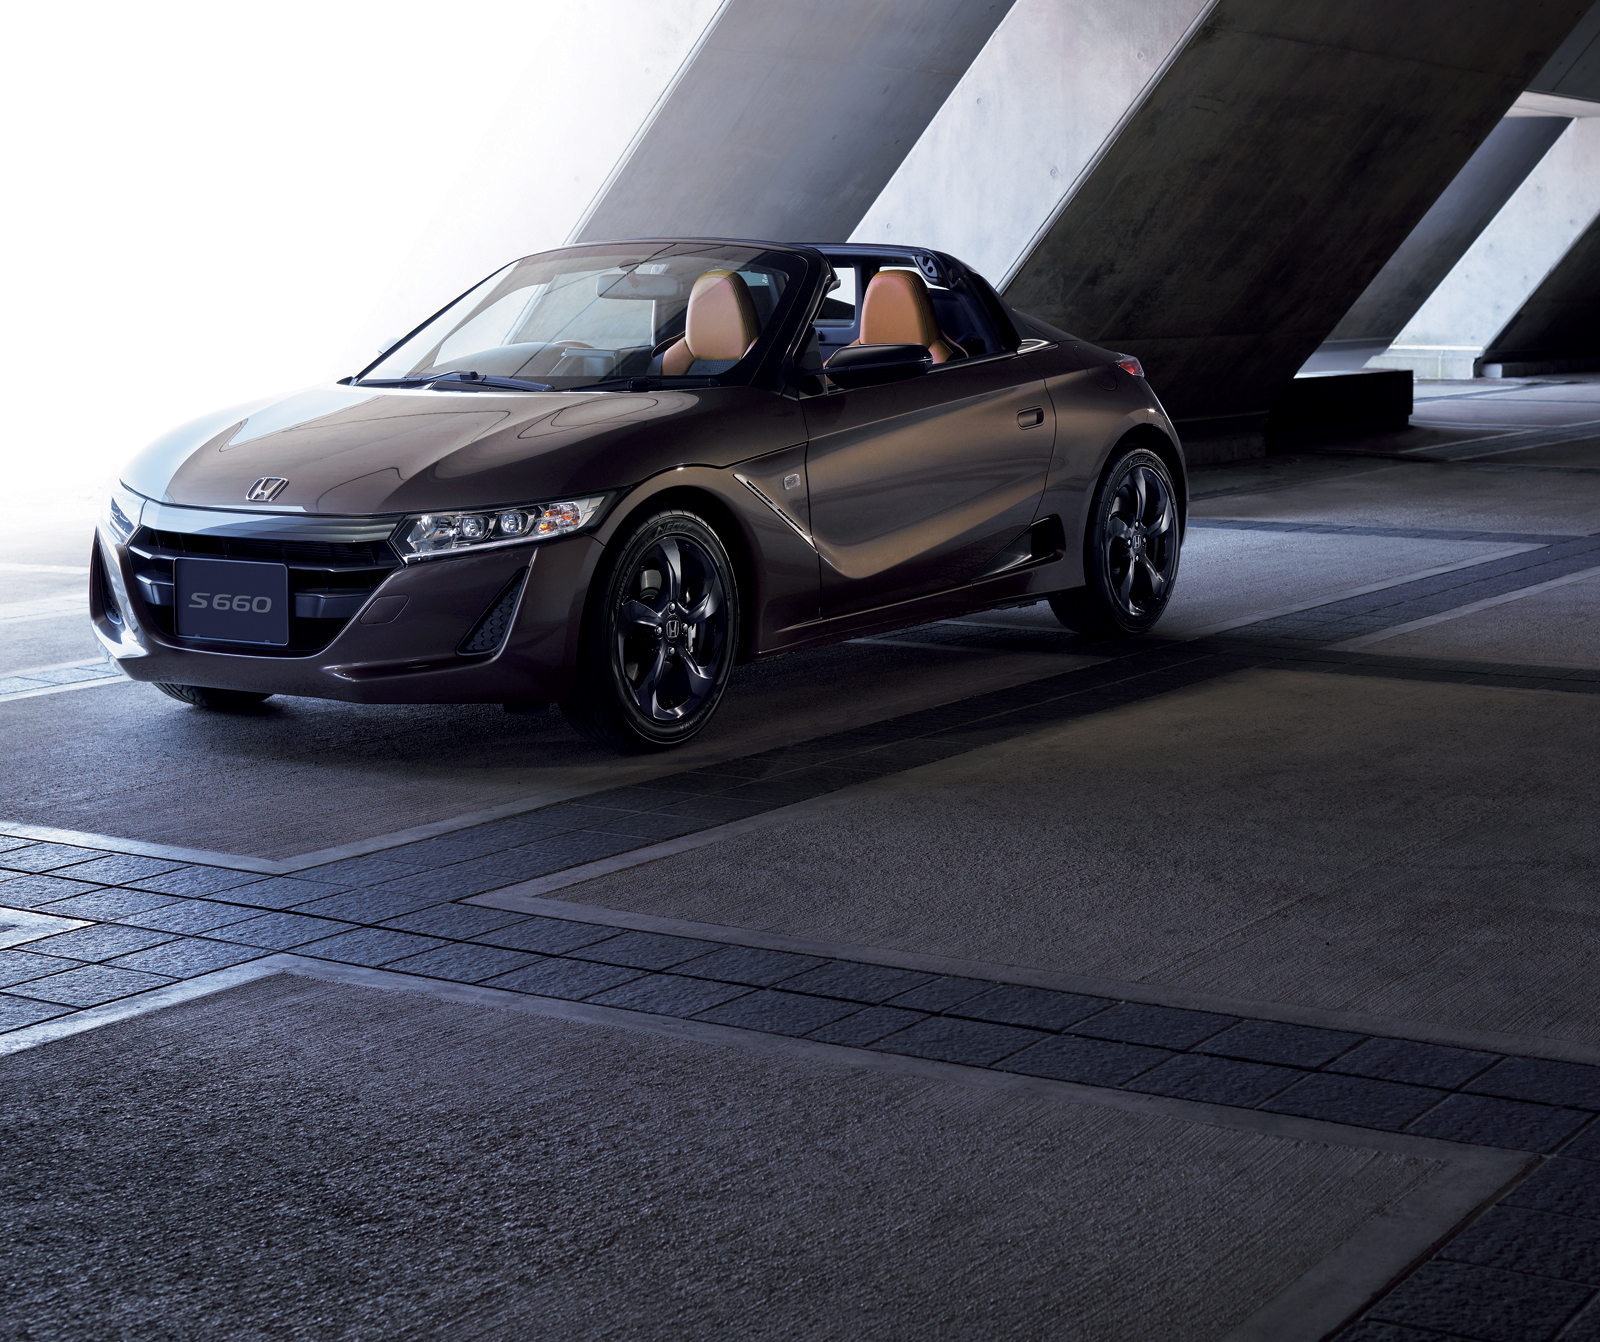 Honda_S660_Bruno_Leather_Edition_01